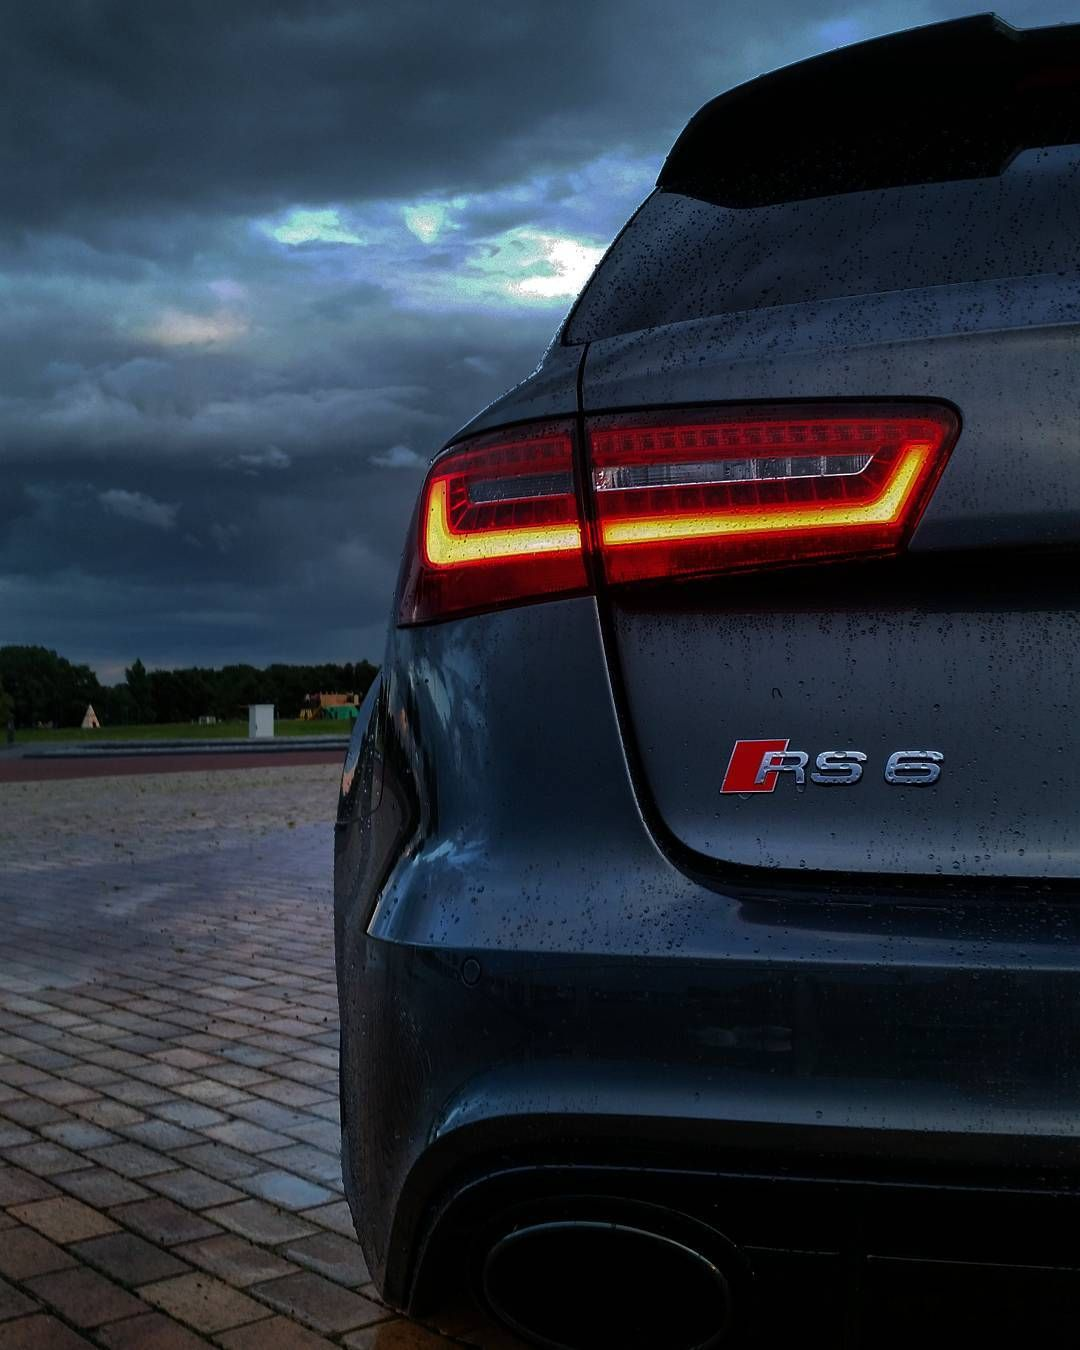 Rs6 Iphone Background Iphone Backgrounds Pinterest Audi Audi